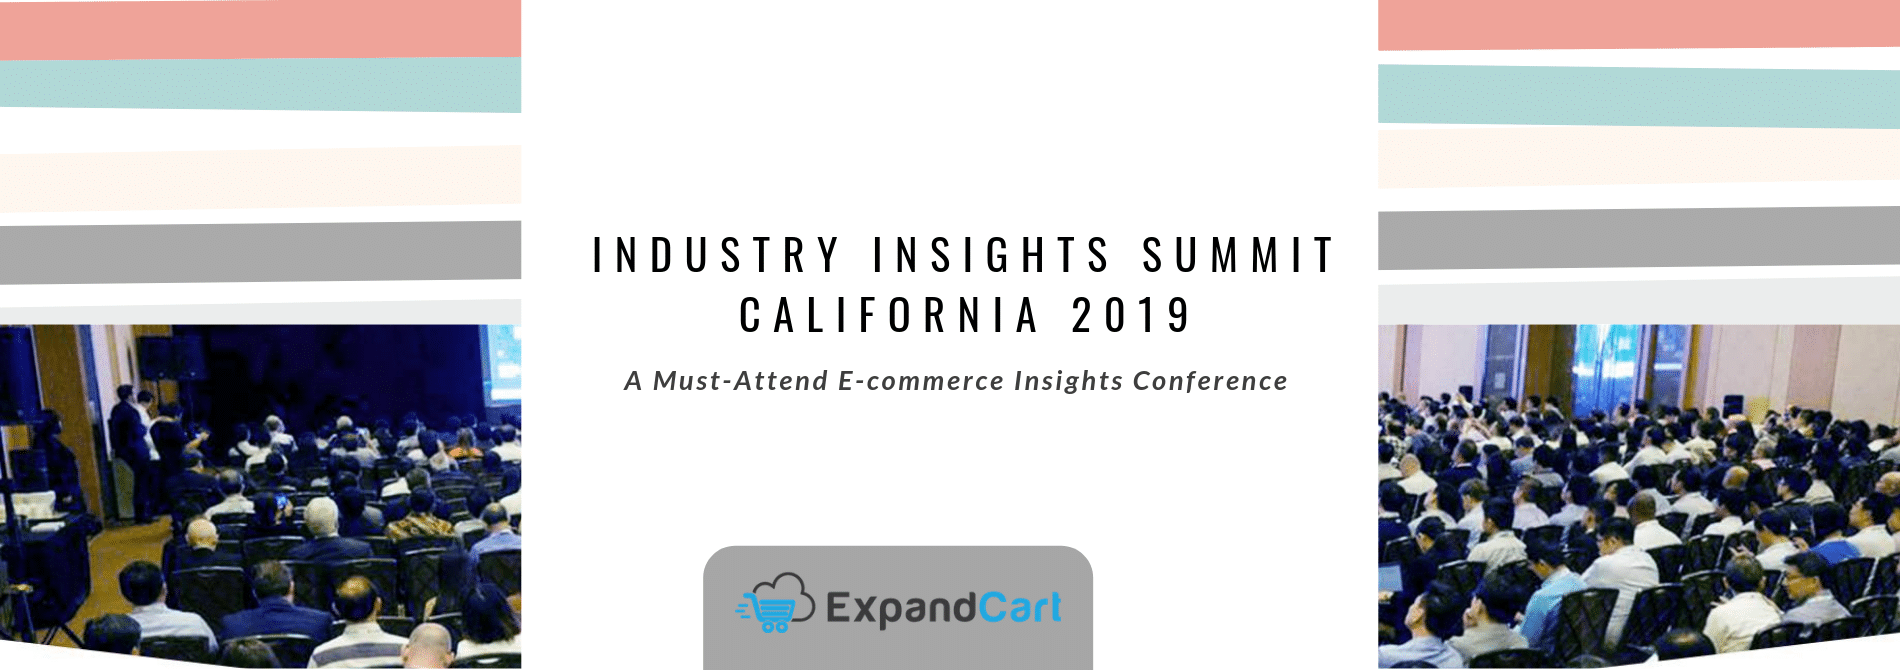 Industry Insights Summit | California 2019.. A Must-Attend E-commerce Insights Conference